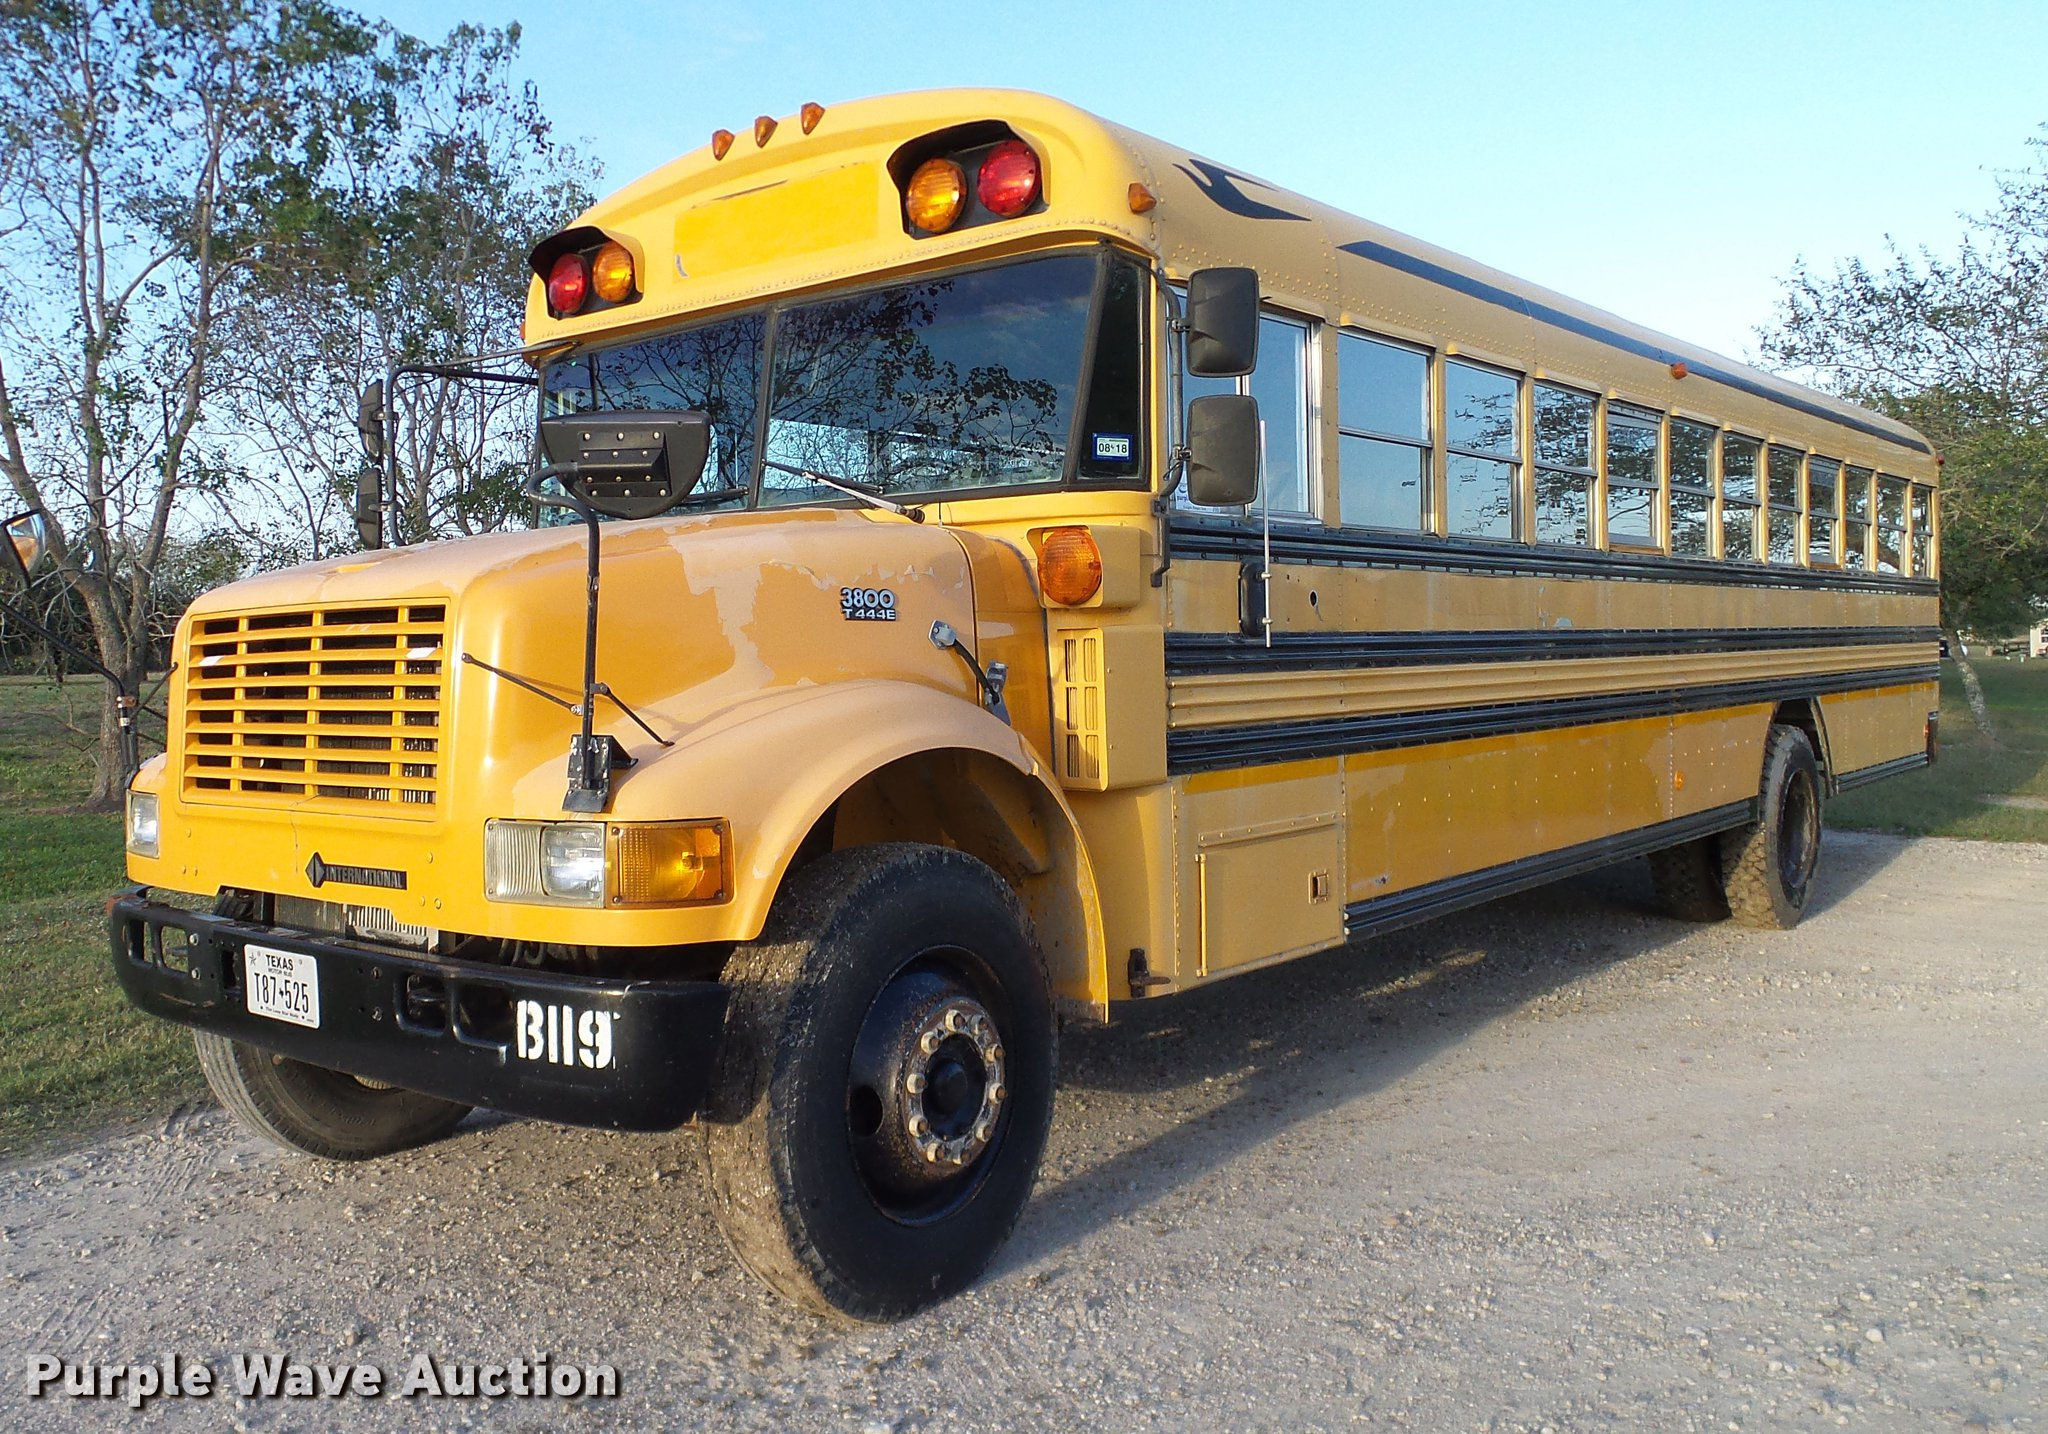 1997 International 3800 Blue Bird School Bus Item Dc7963